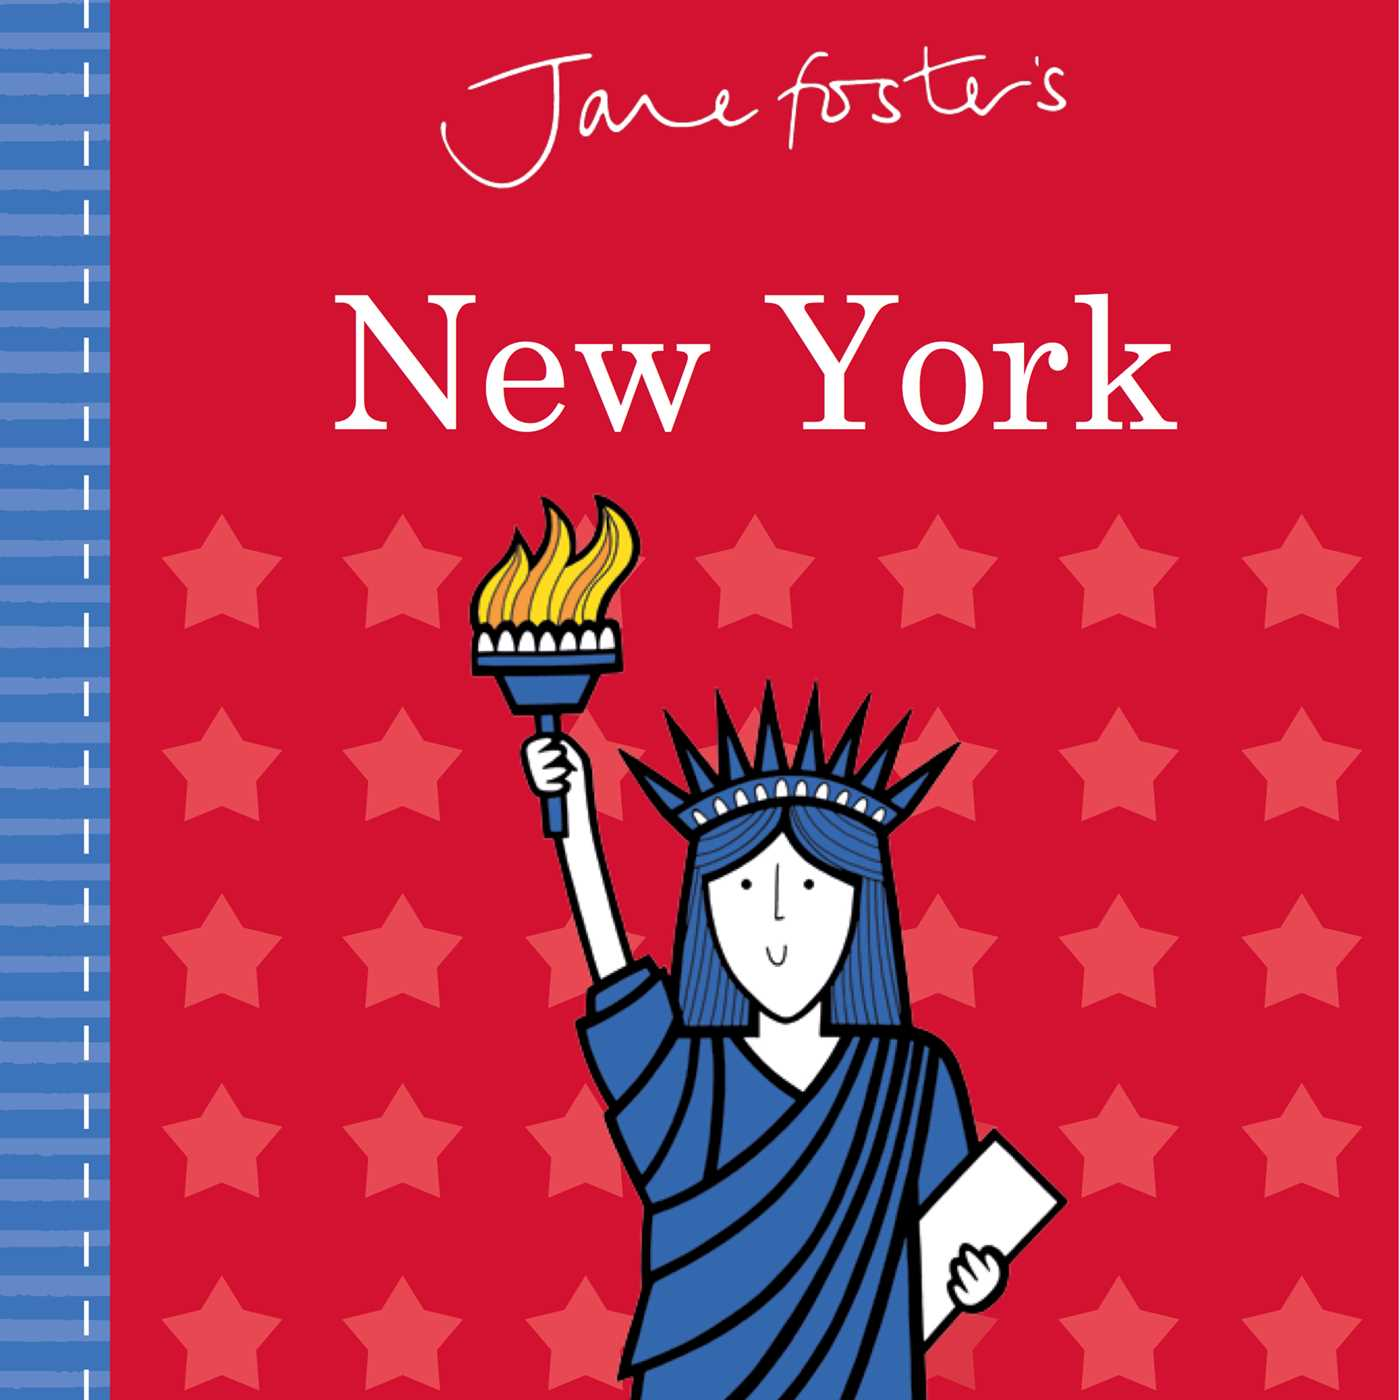 Jane fosters cities new york 9781499804881 hr